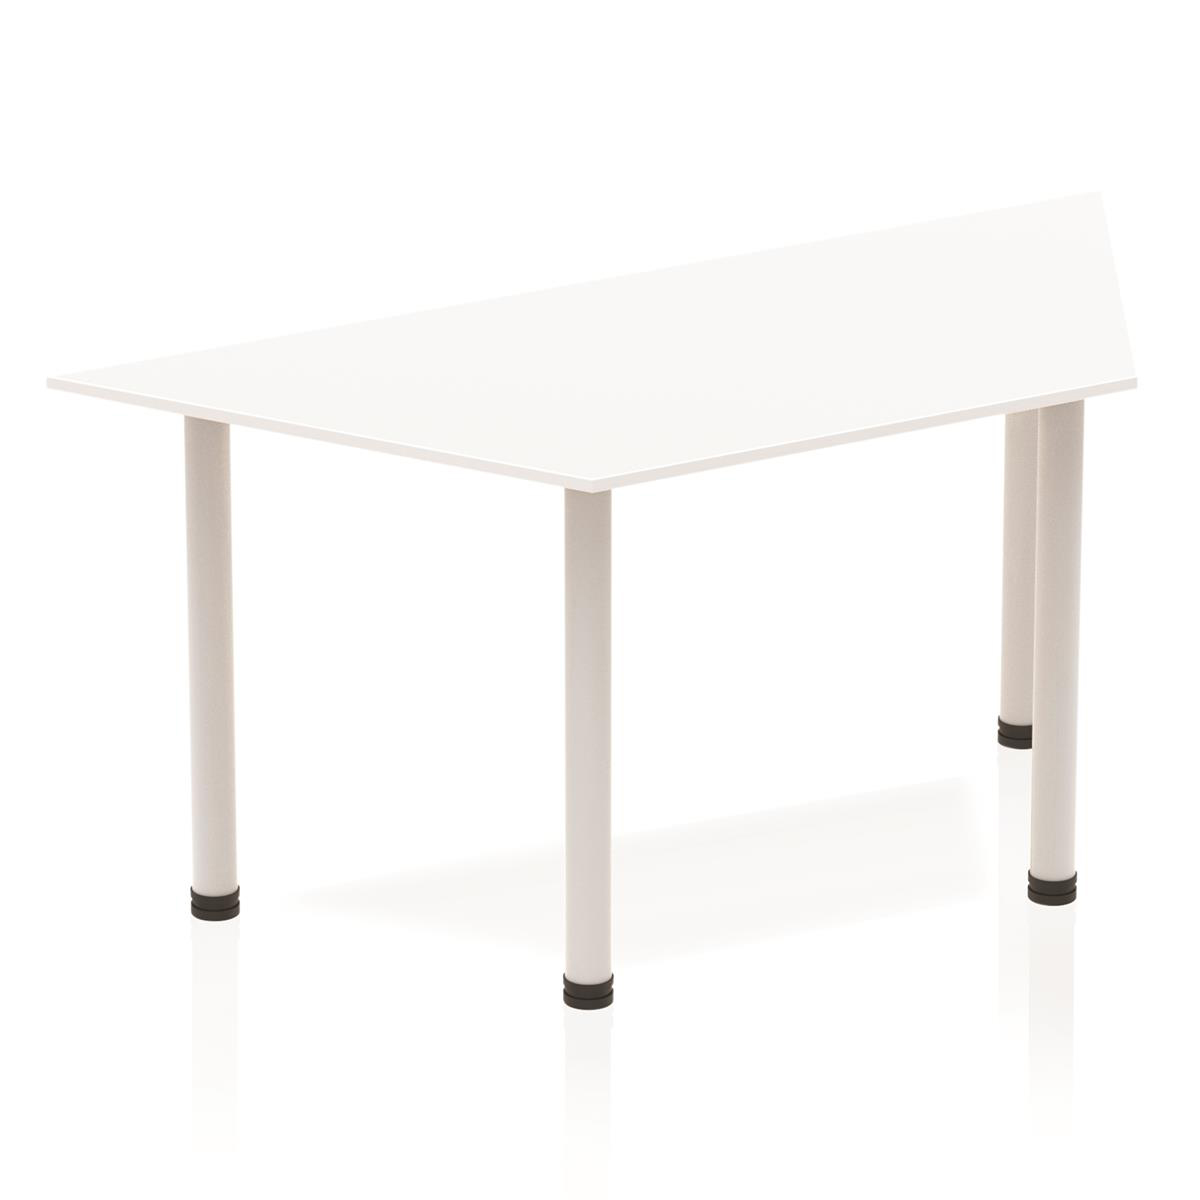 Sonix Trapezoidal Silver Post Leg Table 1600x800mm White Ref BF00176